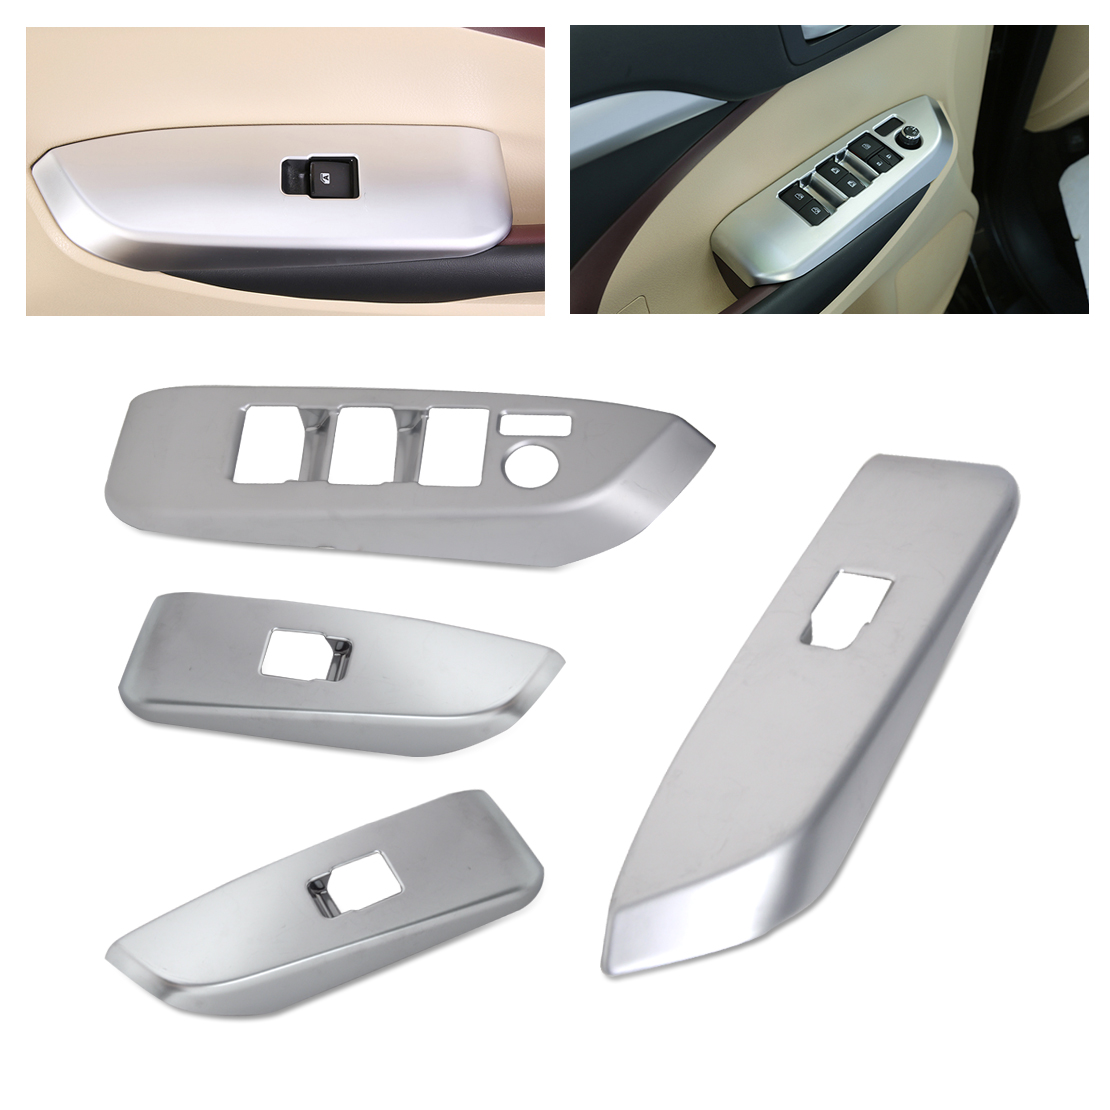 CITALL 4pcs Car Interior ABS Chrome Door Window Switch Console Panel Cover Trim fit for Toyota Highlander 2014 2015 2016 2017 2016 mini clubman one coopers side door power window switch center console panel covers accessories car stickers for f54 6 door page 4